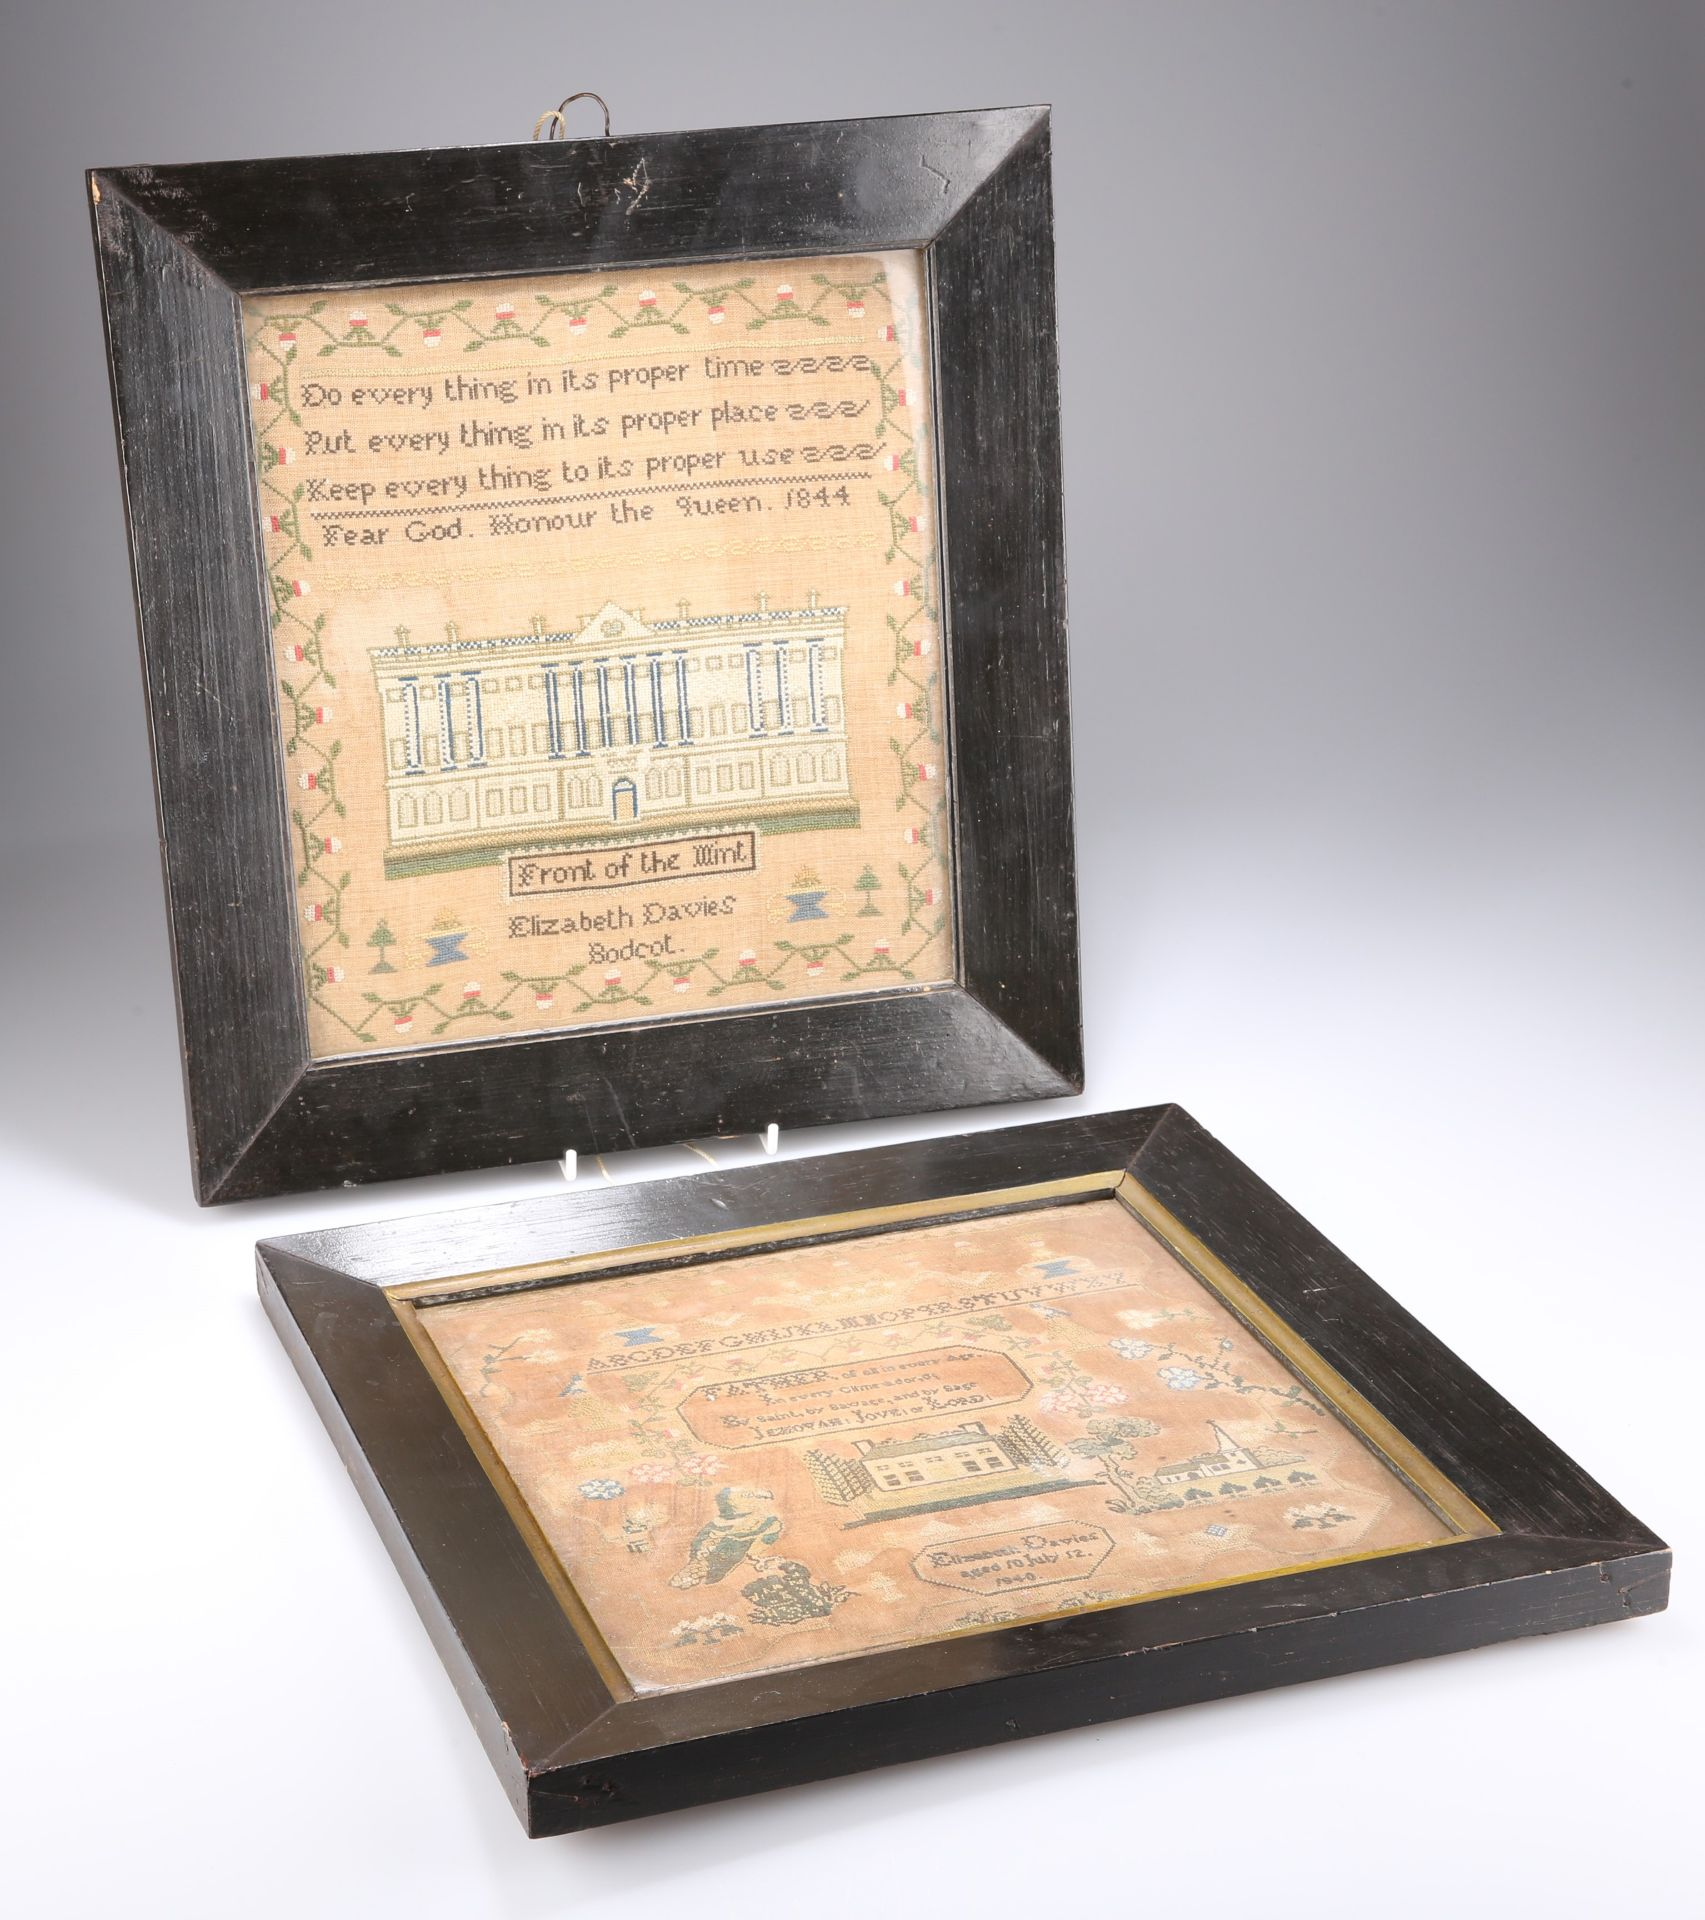 TWO EARLY VICTORIAN NEEDLEWORK SAMPLERS, BY ELIZAB